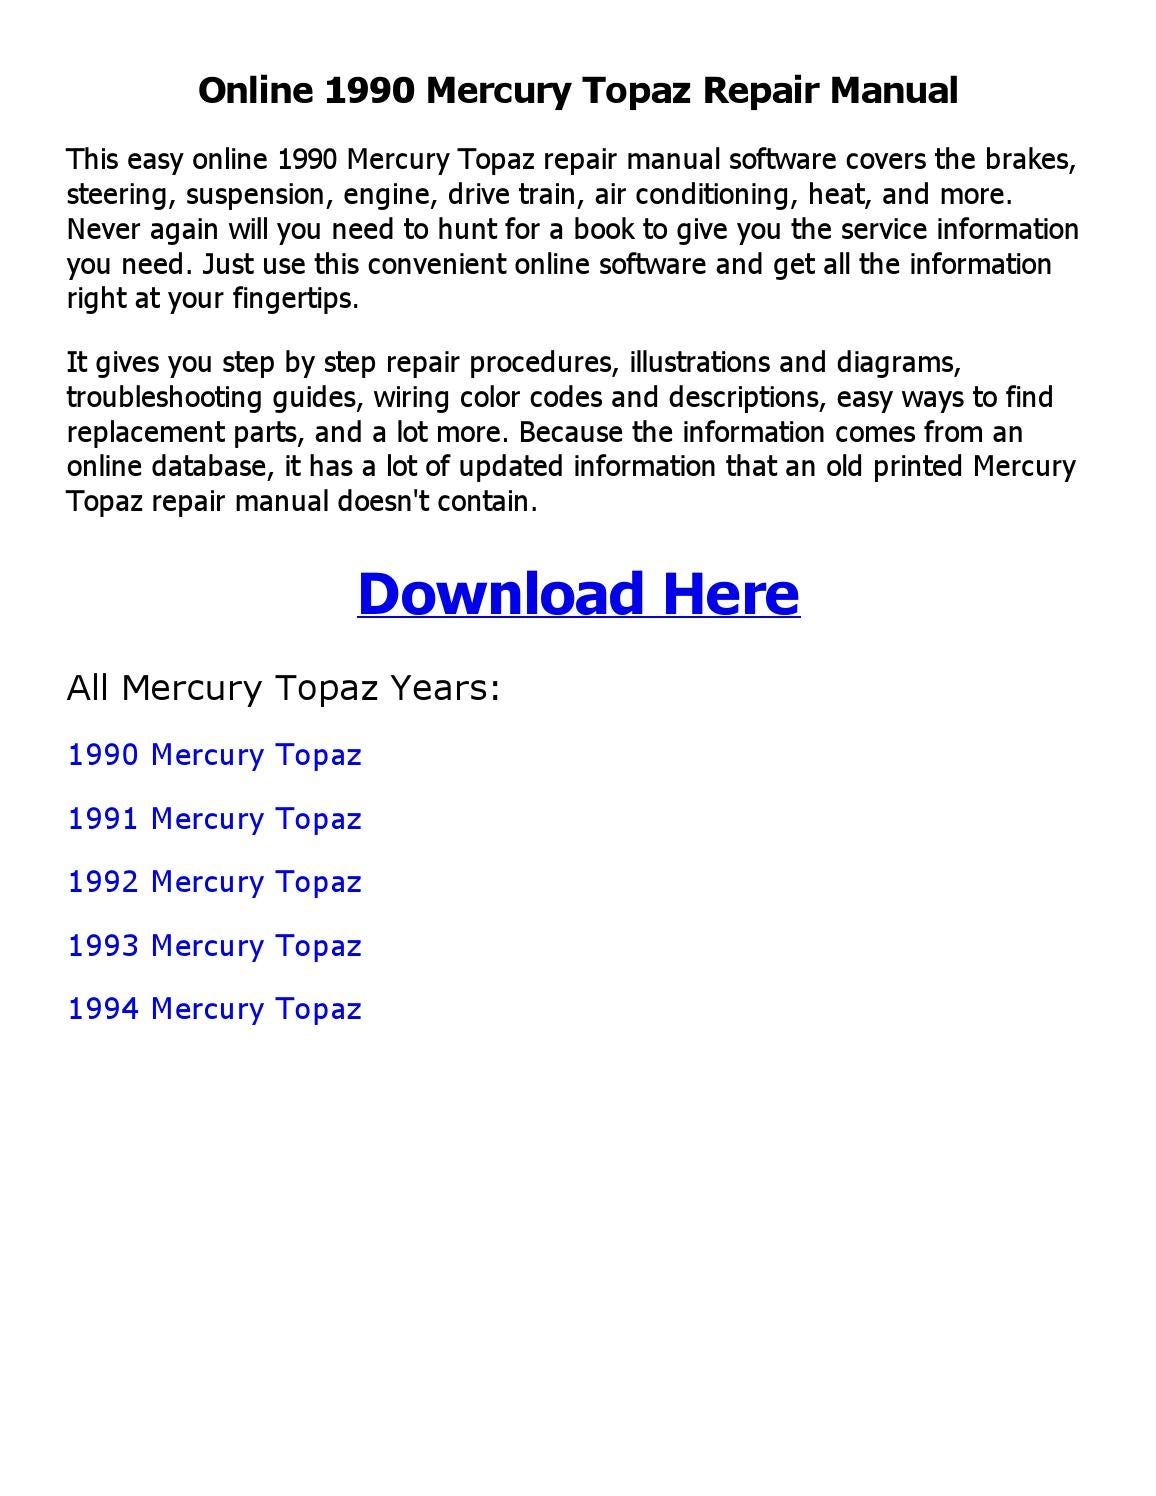 1992 Mercury Topaz Parts Diagram Electrical Wiring Diagrams 1990 Fuse Box Repair Manual Online By Shoaibsiddique Issuu Sable